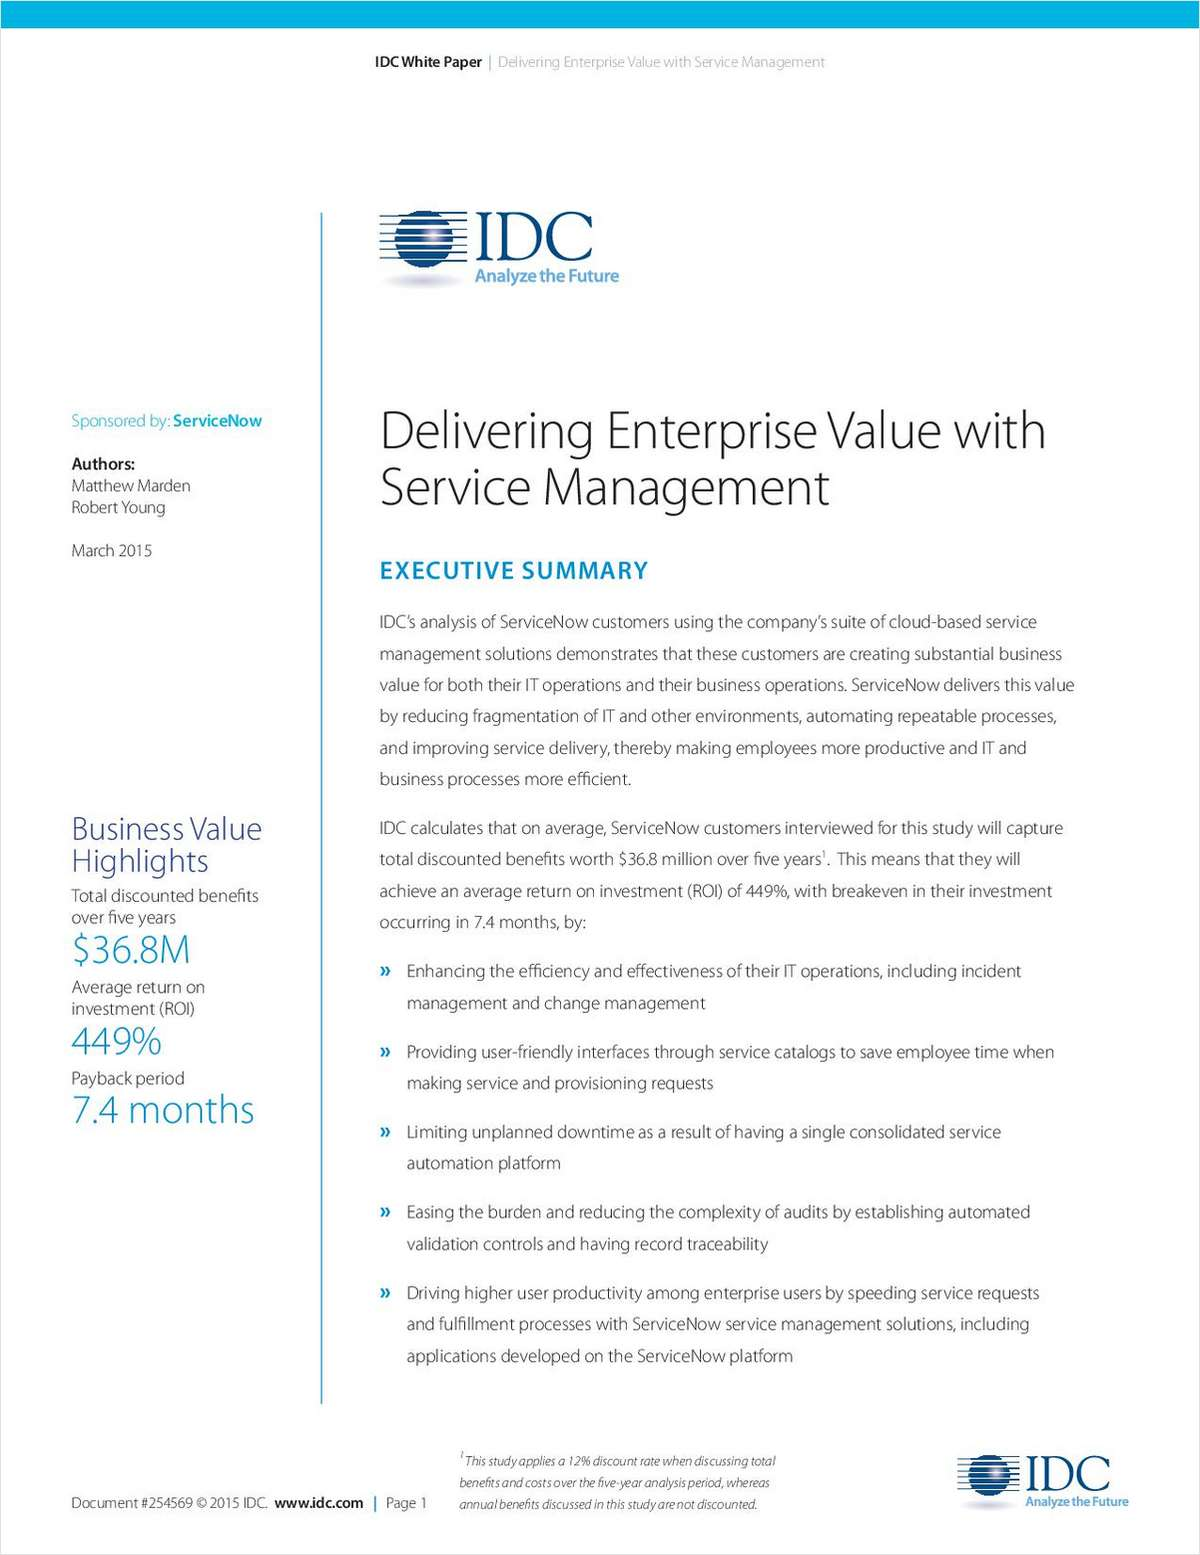 Delivering Enterprise Value with Service Management